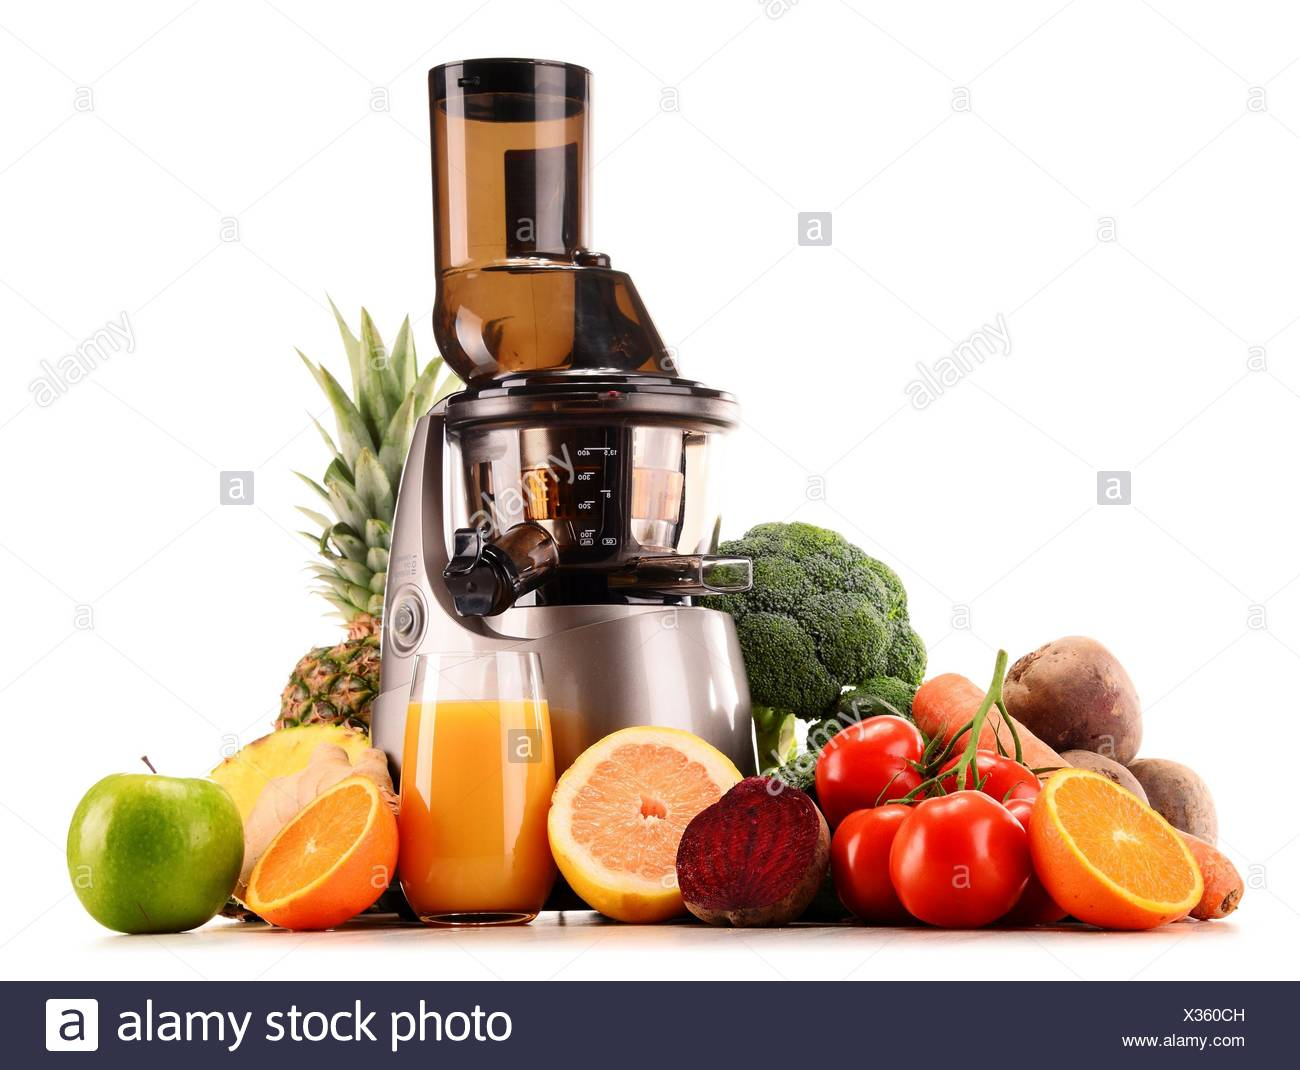 Slow Juicer Diet Recipes : Juicer Machine Stock Photos & Juicer Machine Stock Images ...